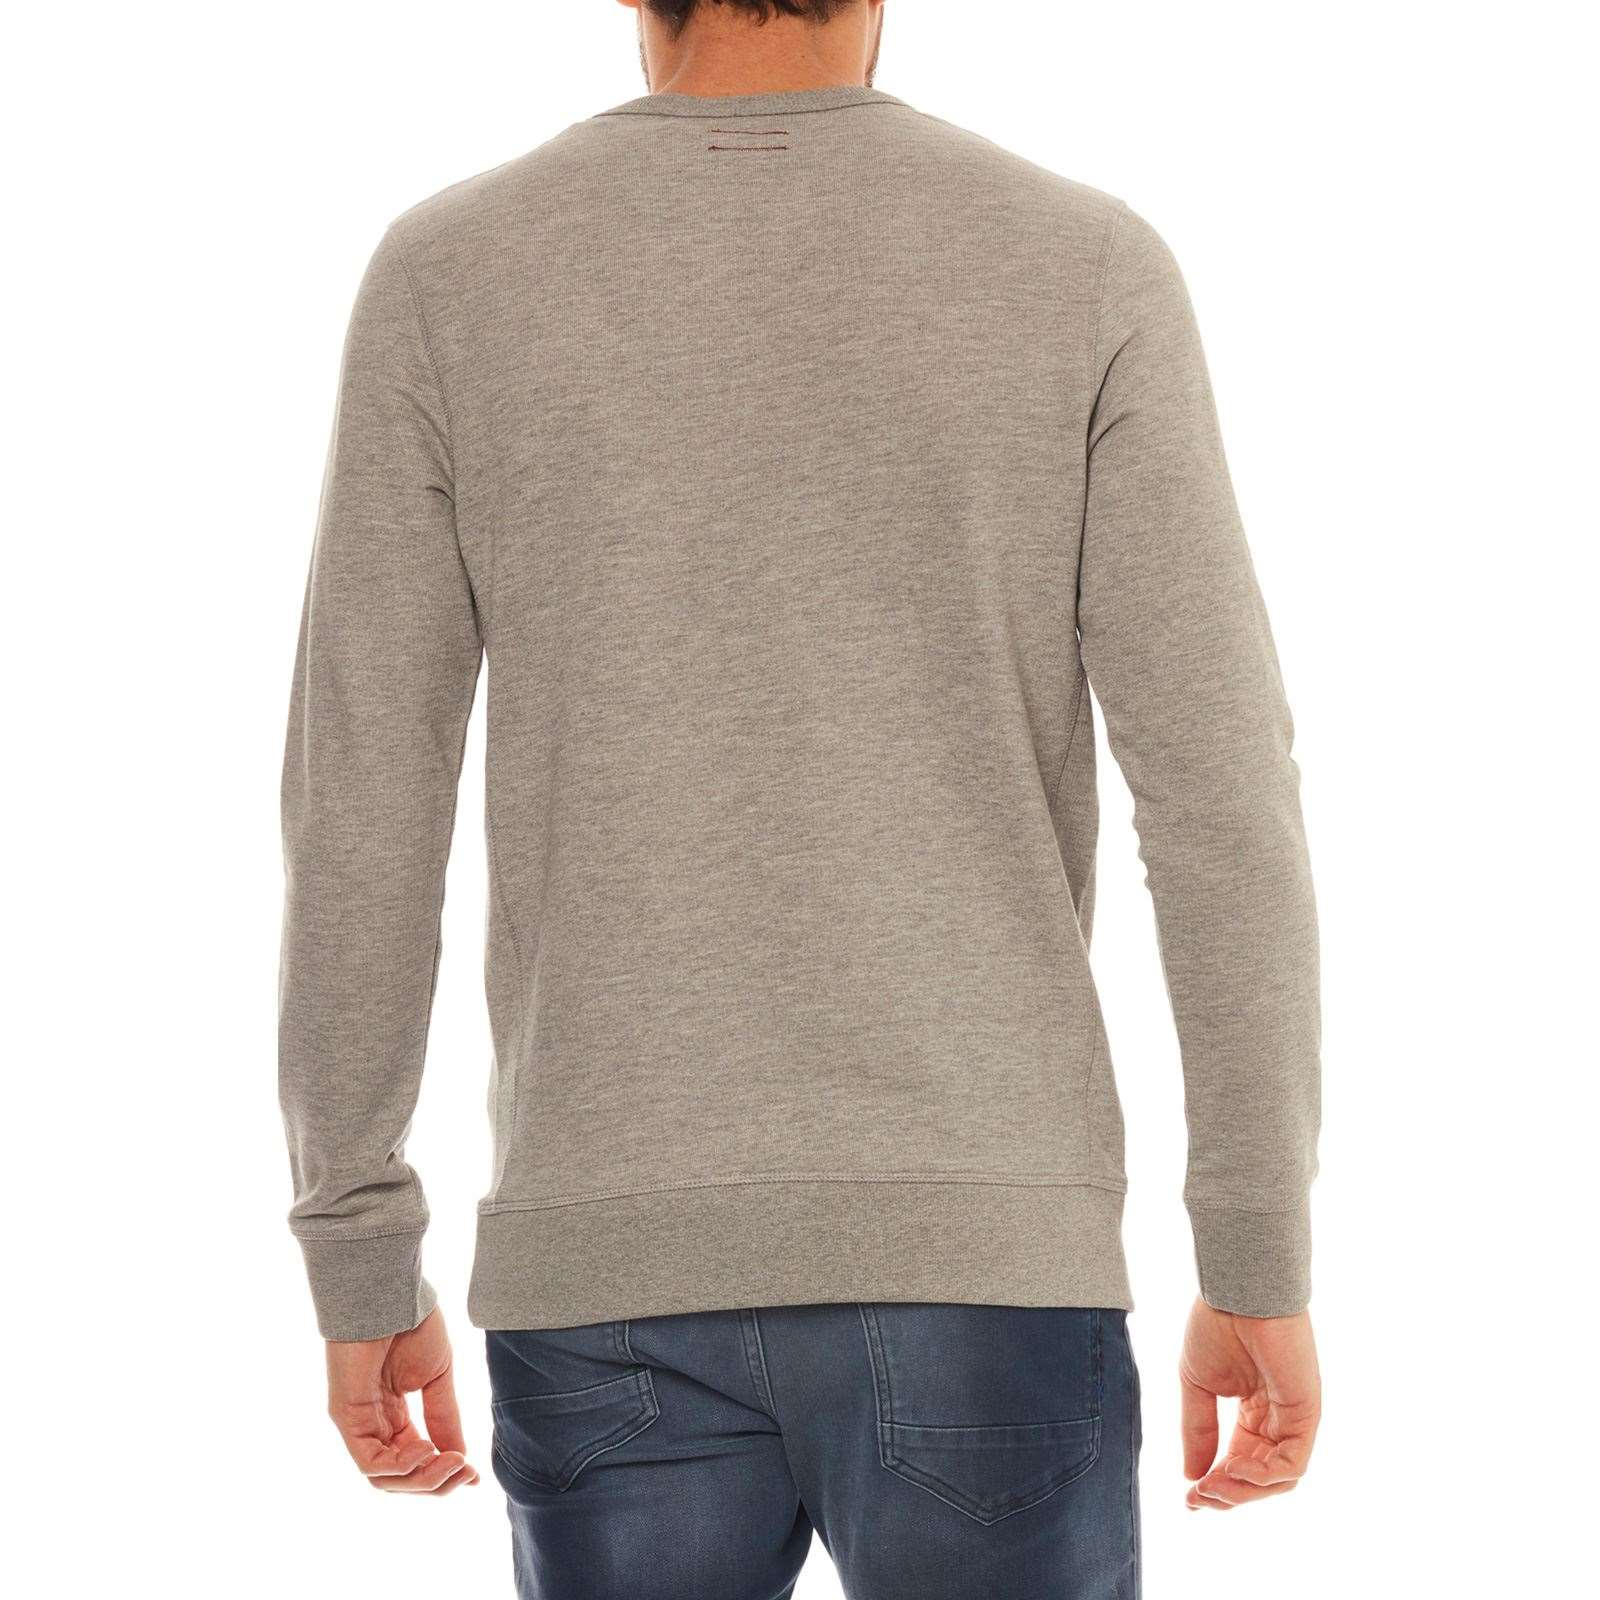 Jack Jprrecycle Gris Clair Sweat Jones shirt amp; ppqrEg